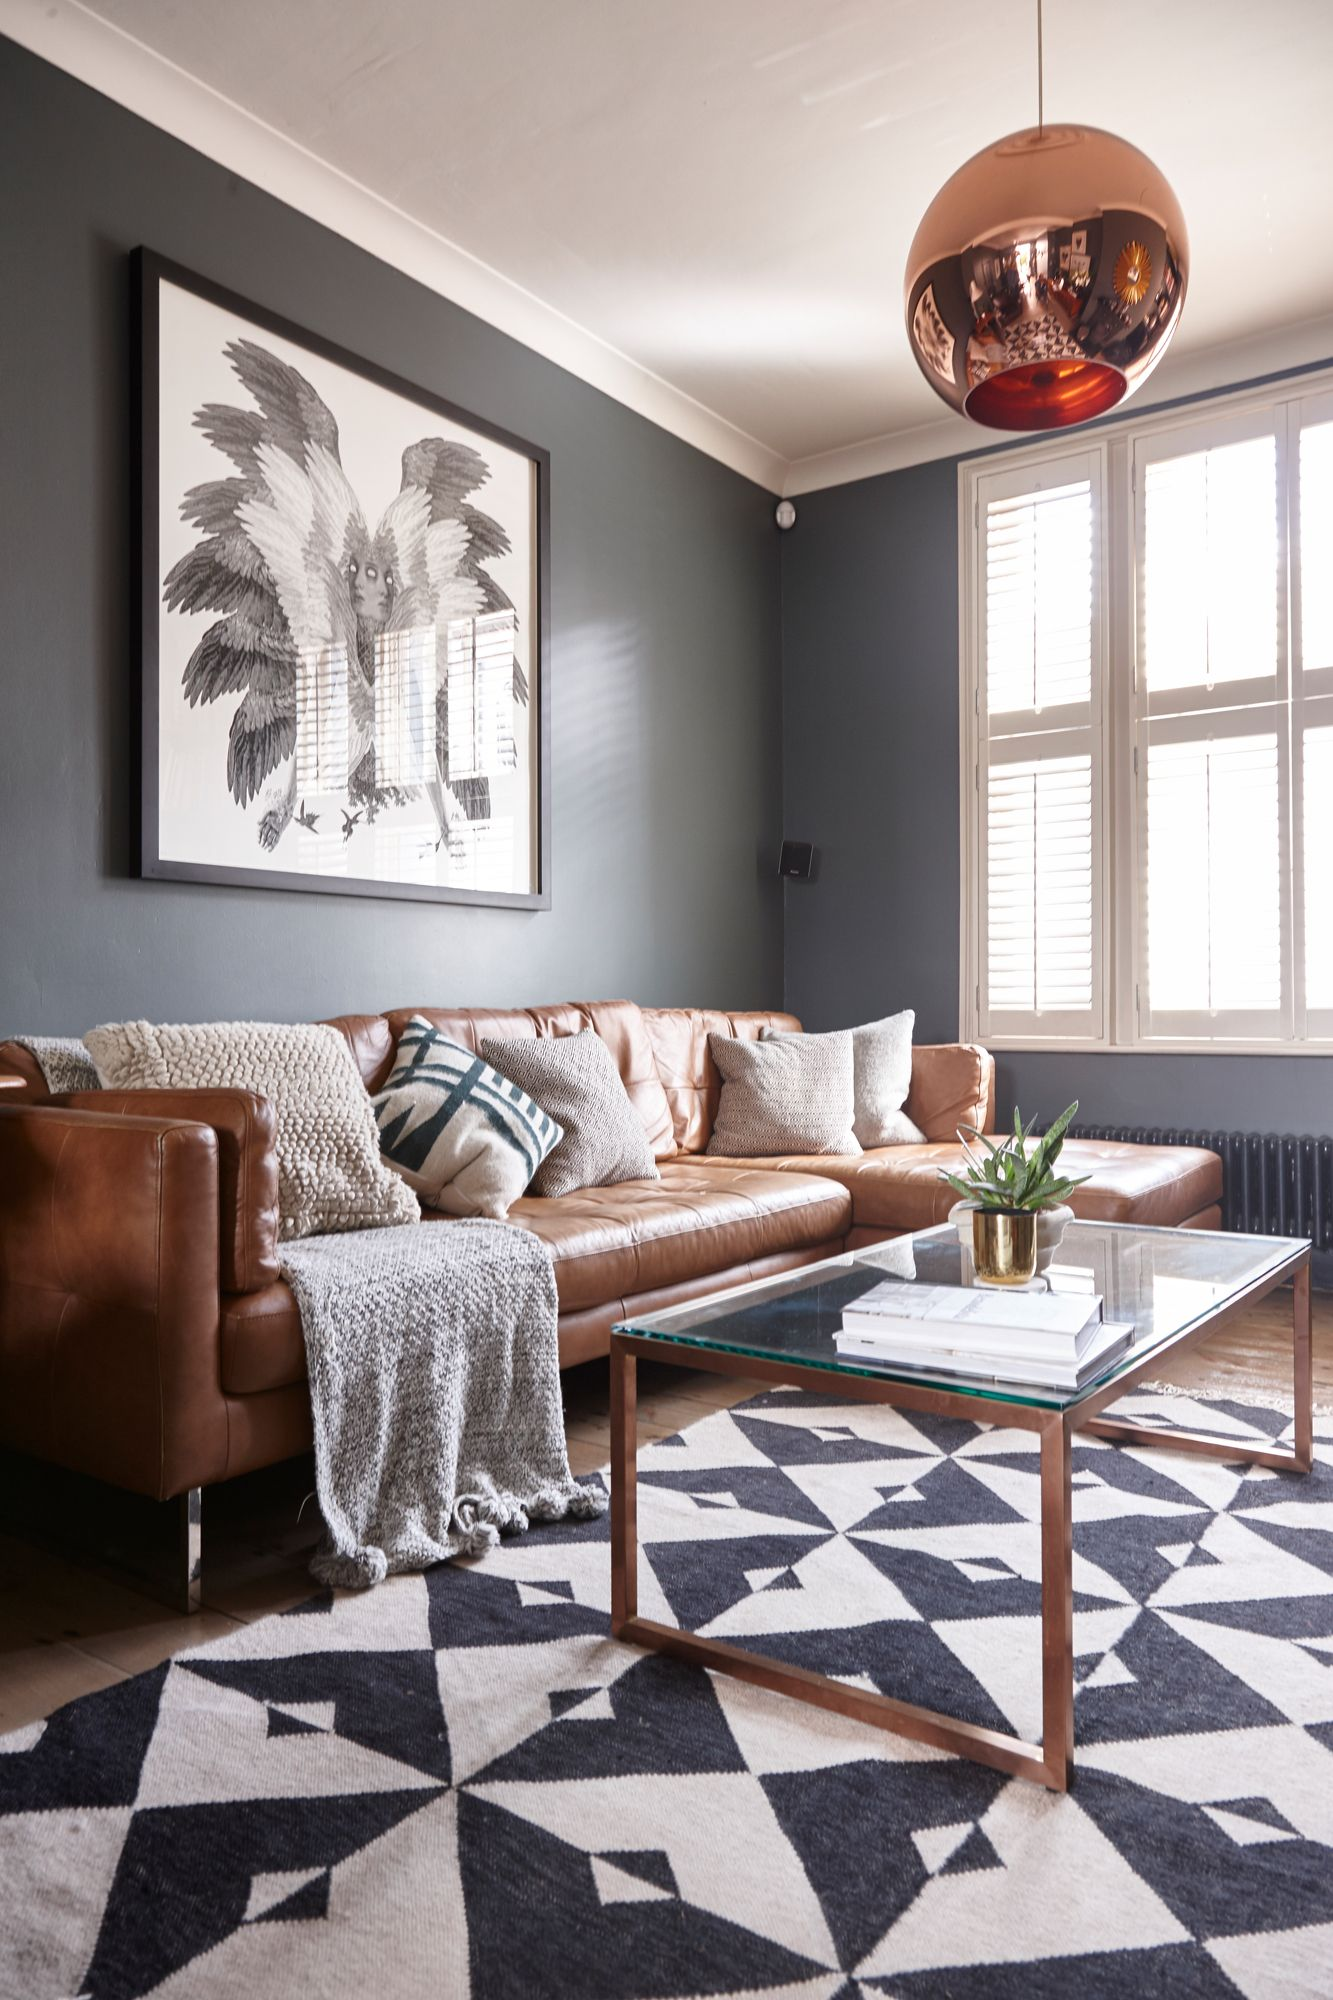 20 living room ideas on a budget to update your space for ...